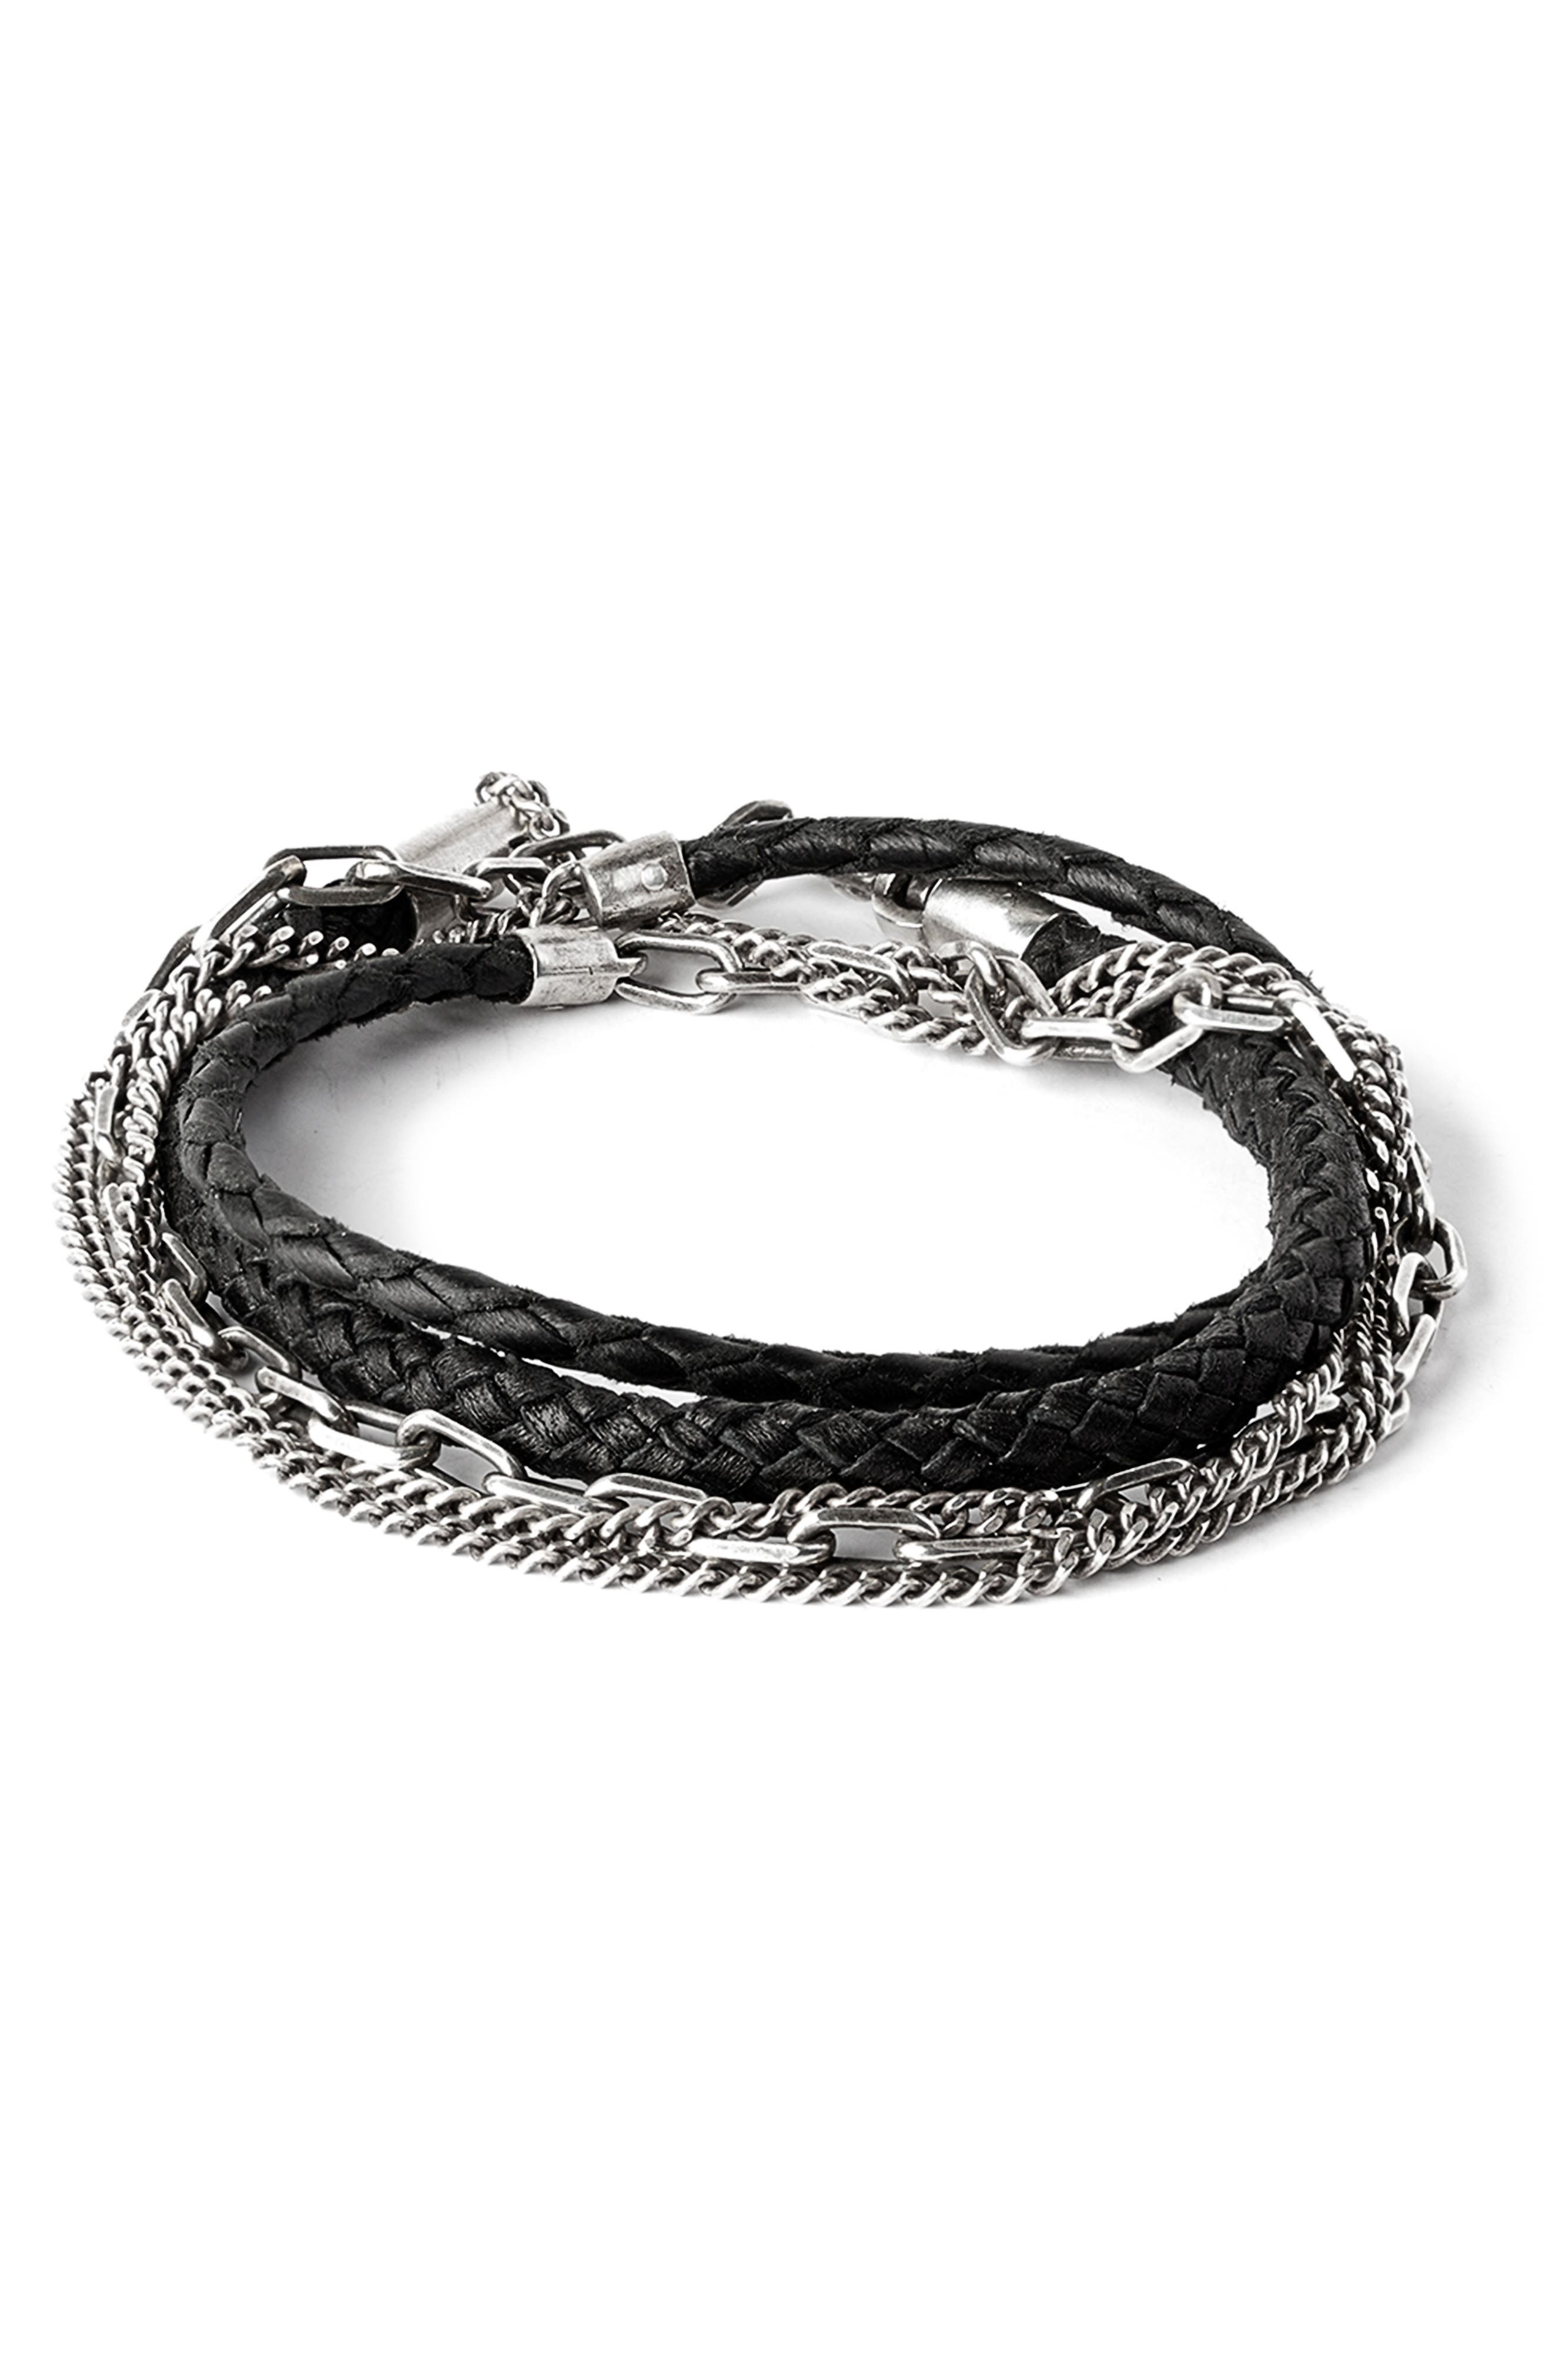 Braided Leather & Chain Multi Wrap Bracelet,                         Main,                         color, 001